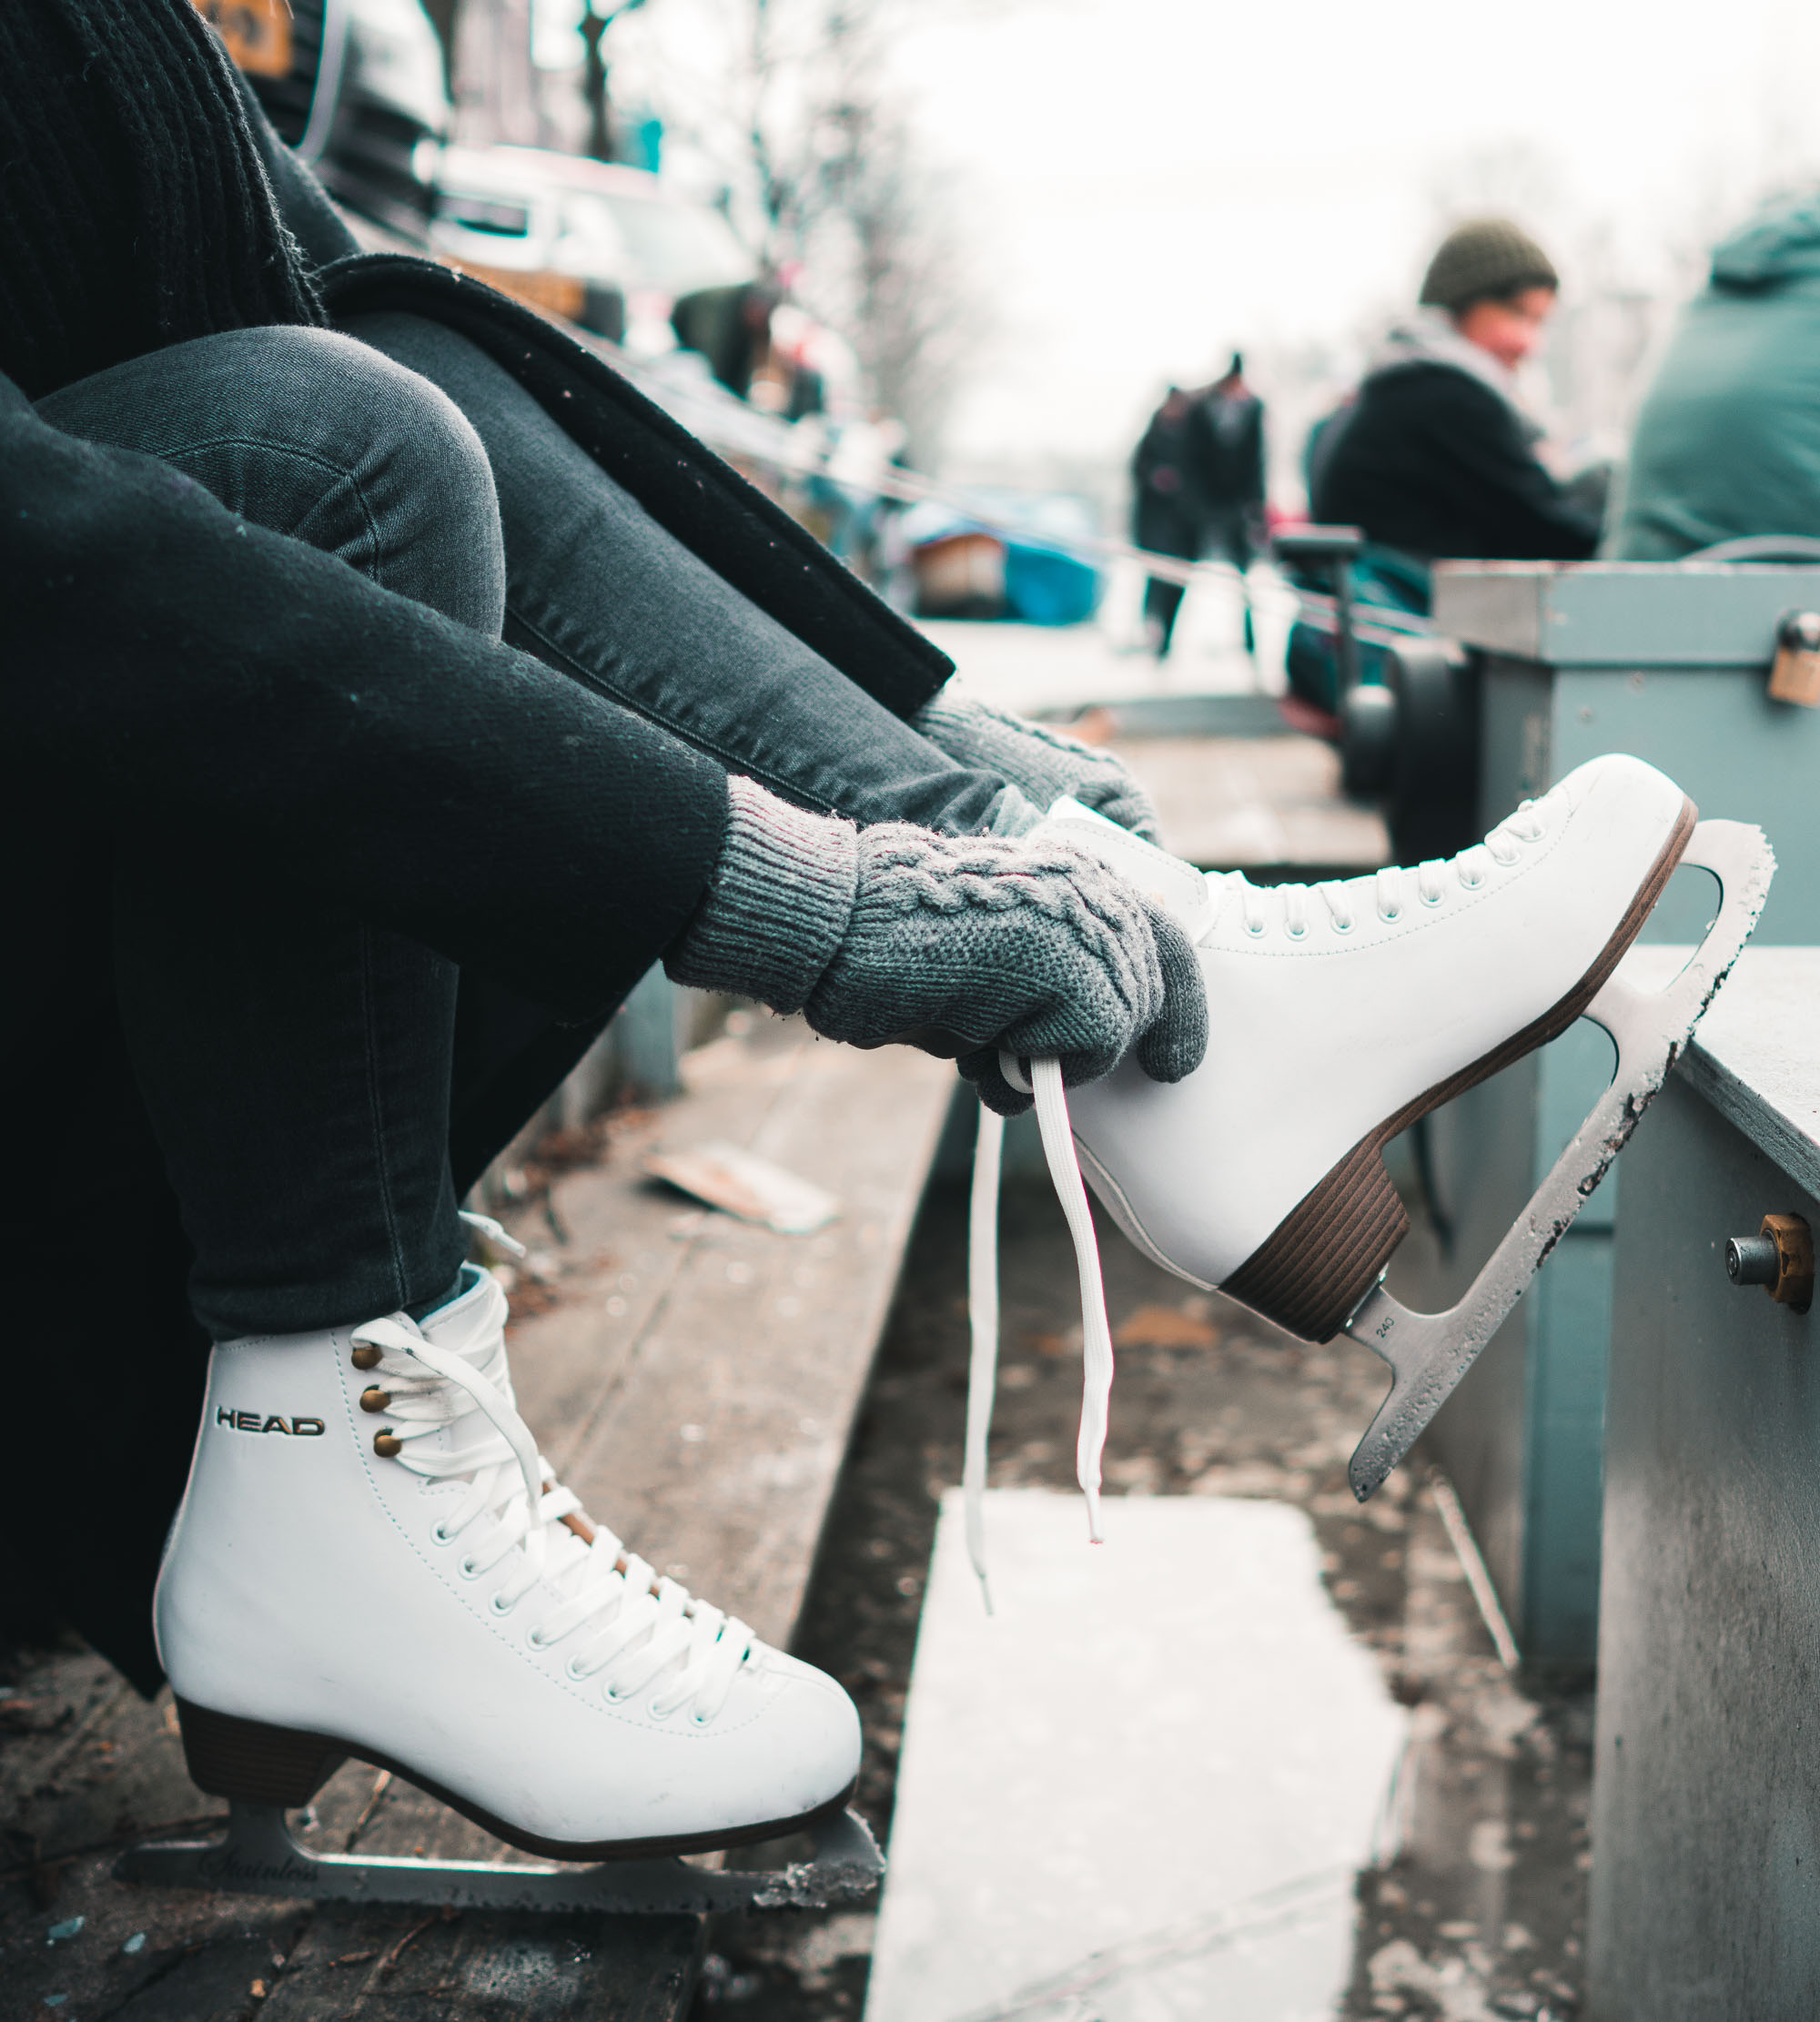 Travel blogger Selena Taylor putting on ice skates for the frozen canals in Amsterdam The Netherlands